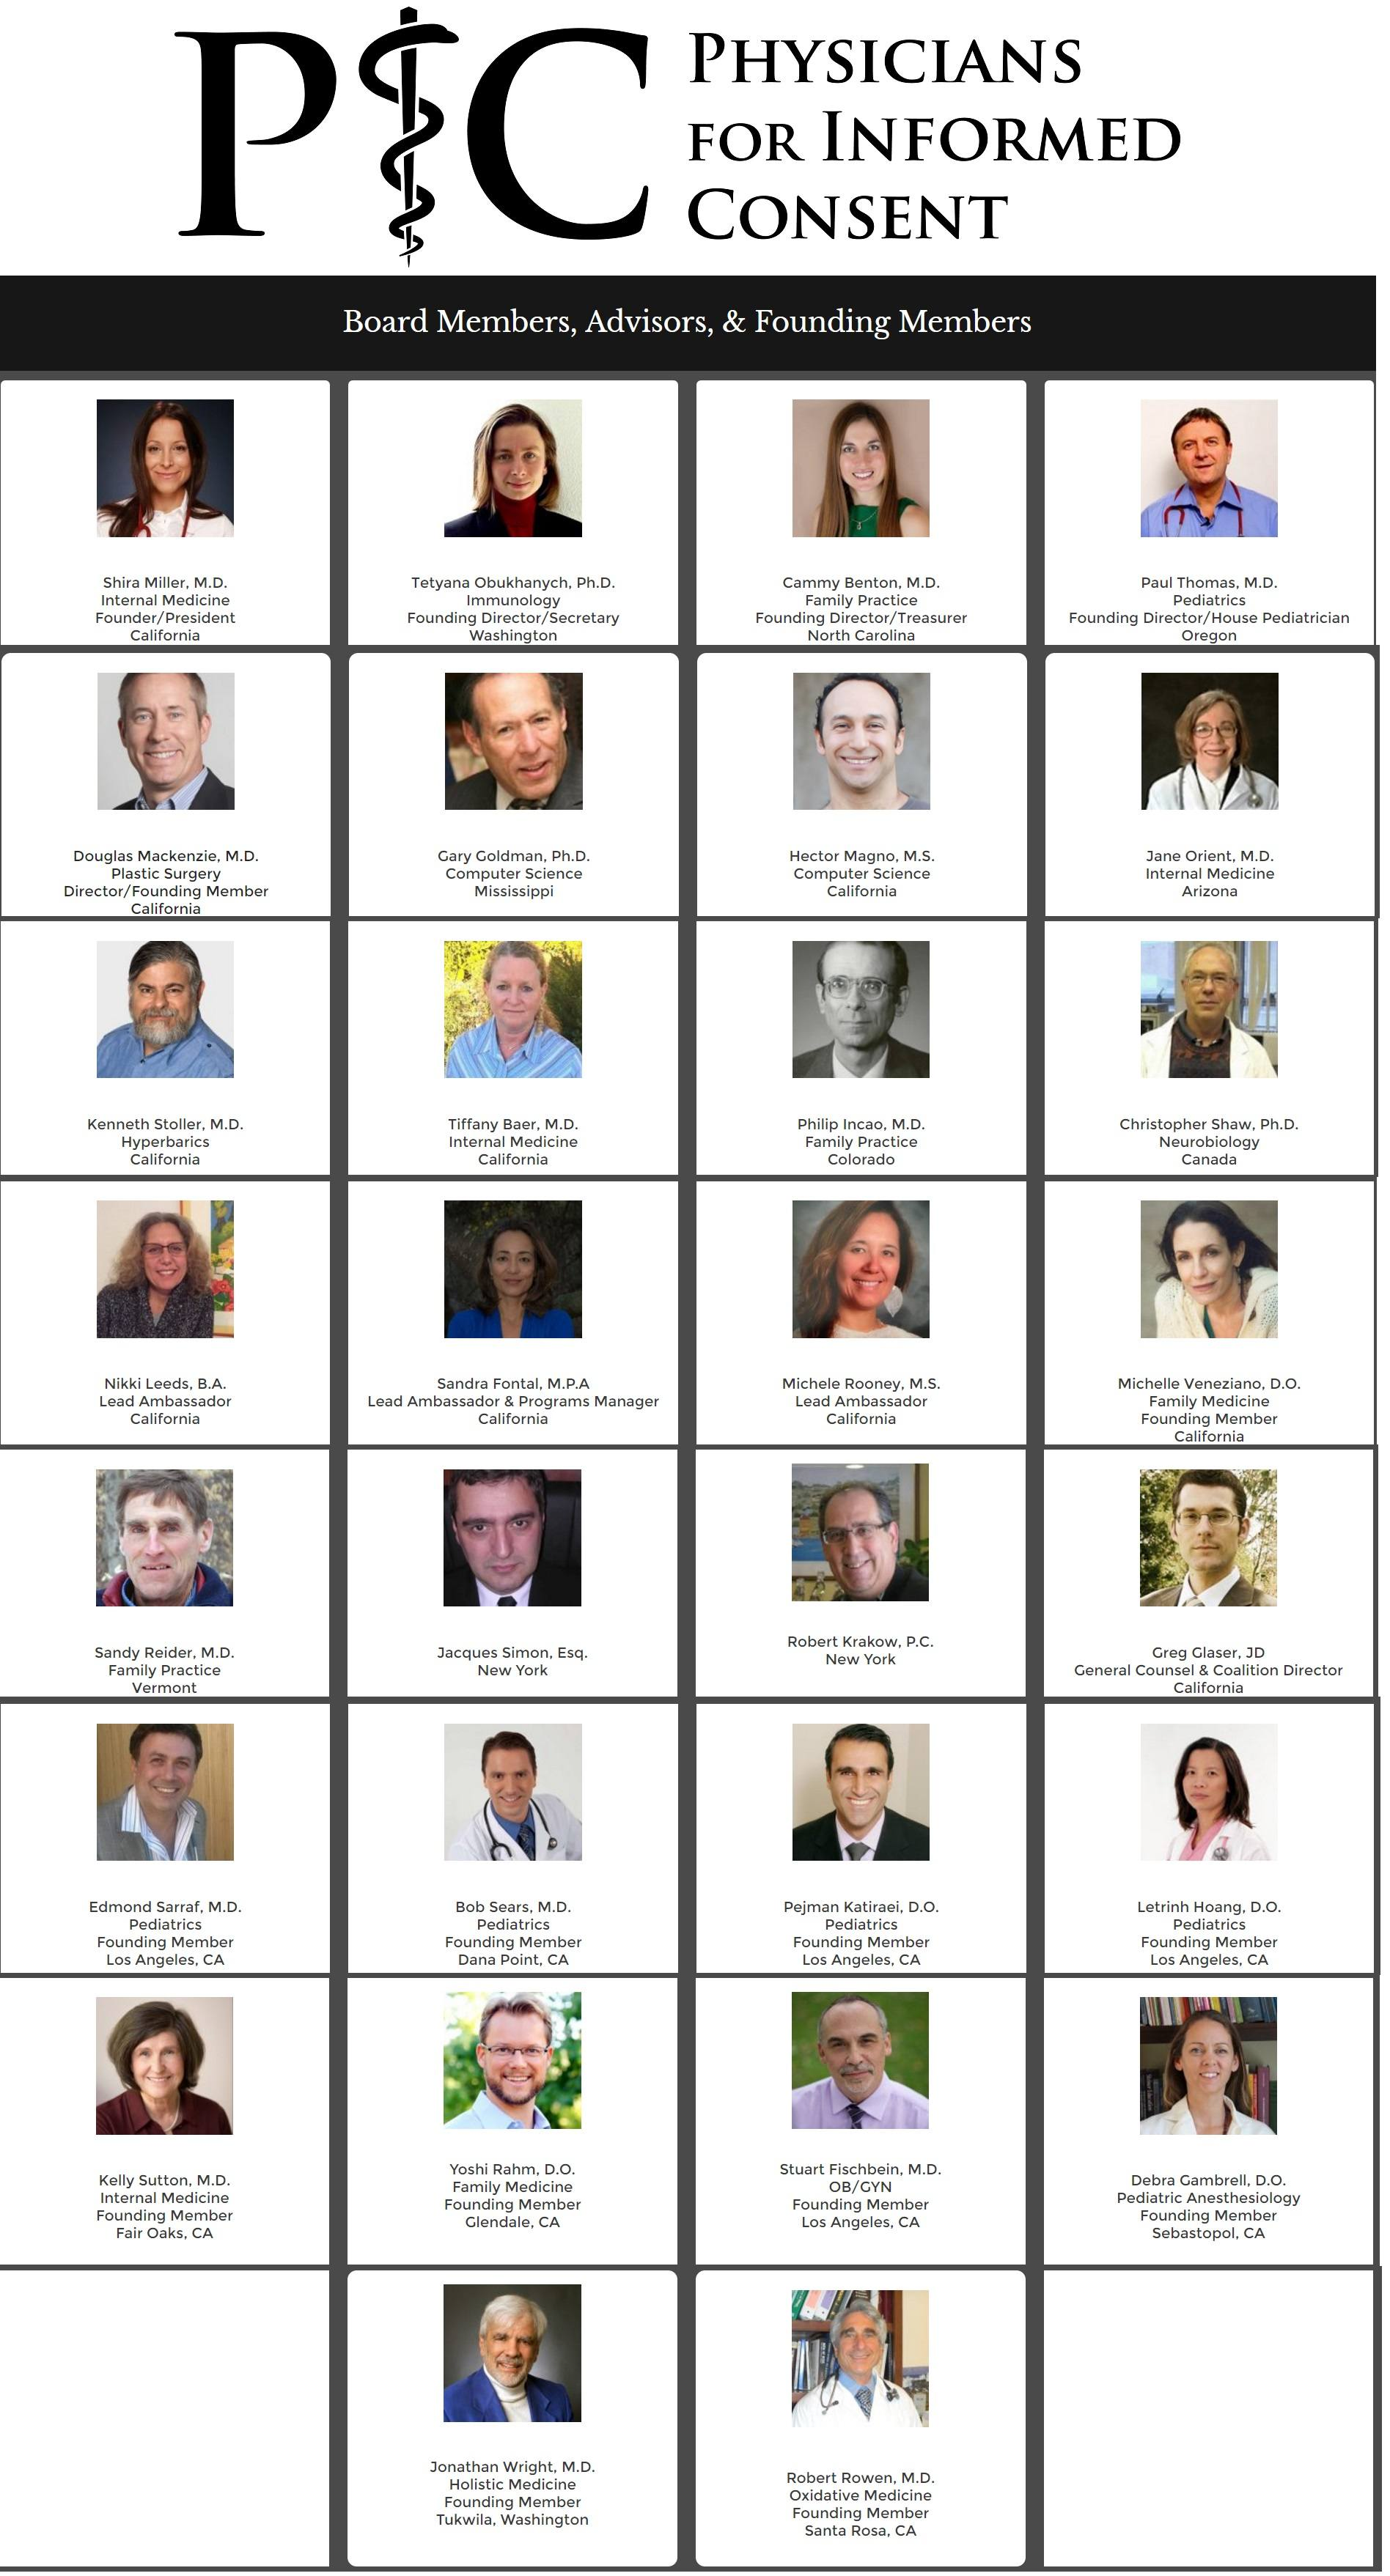 Physicians Informed Consent Leaders